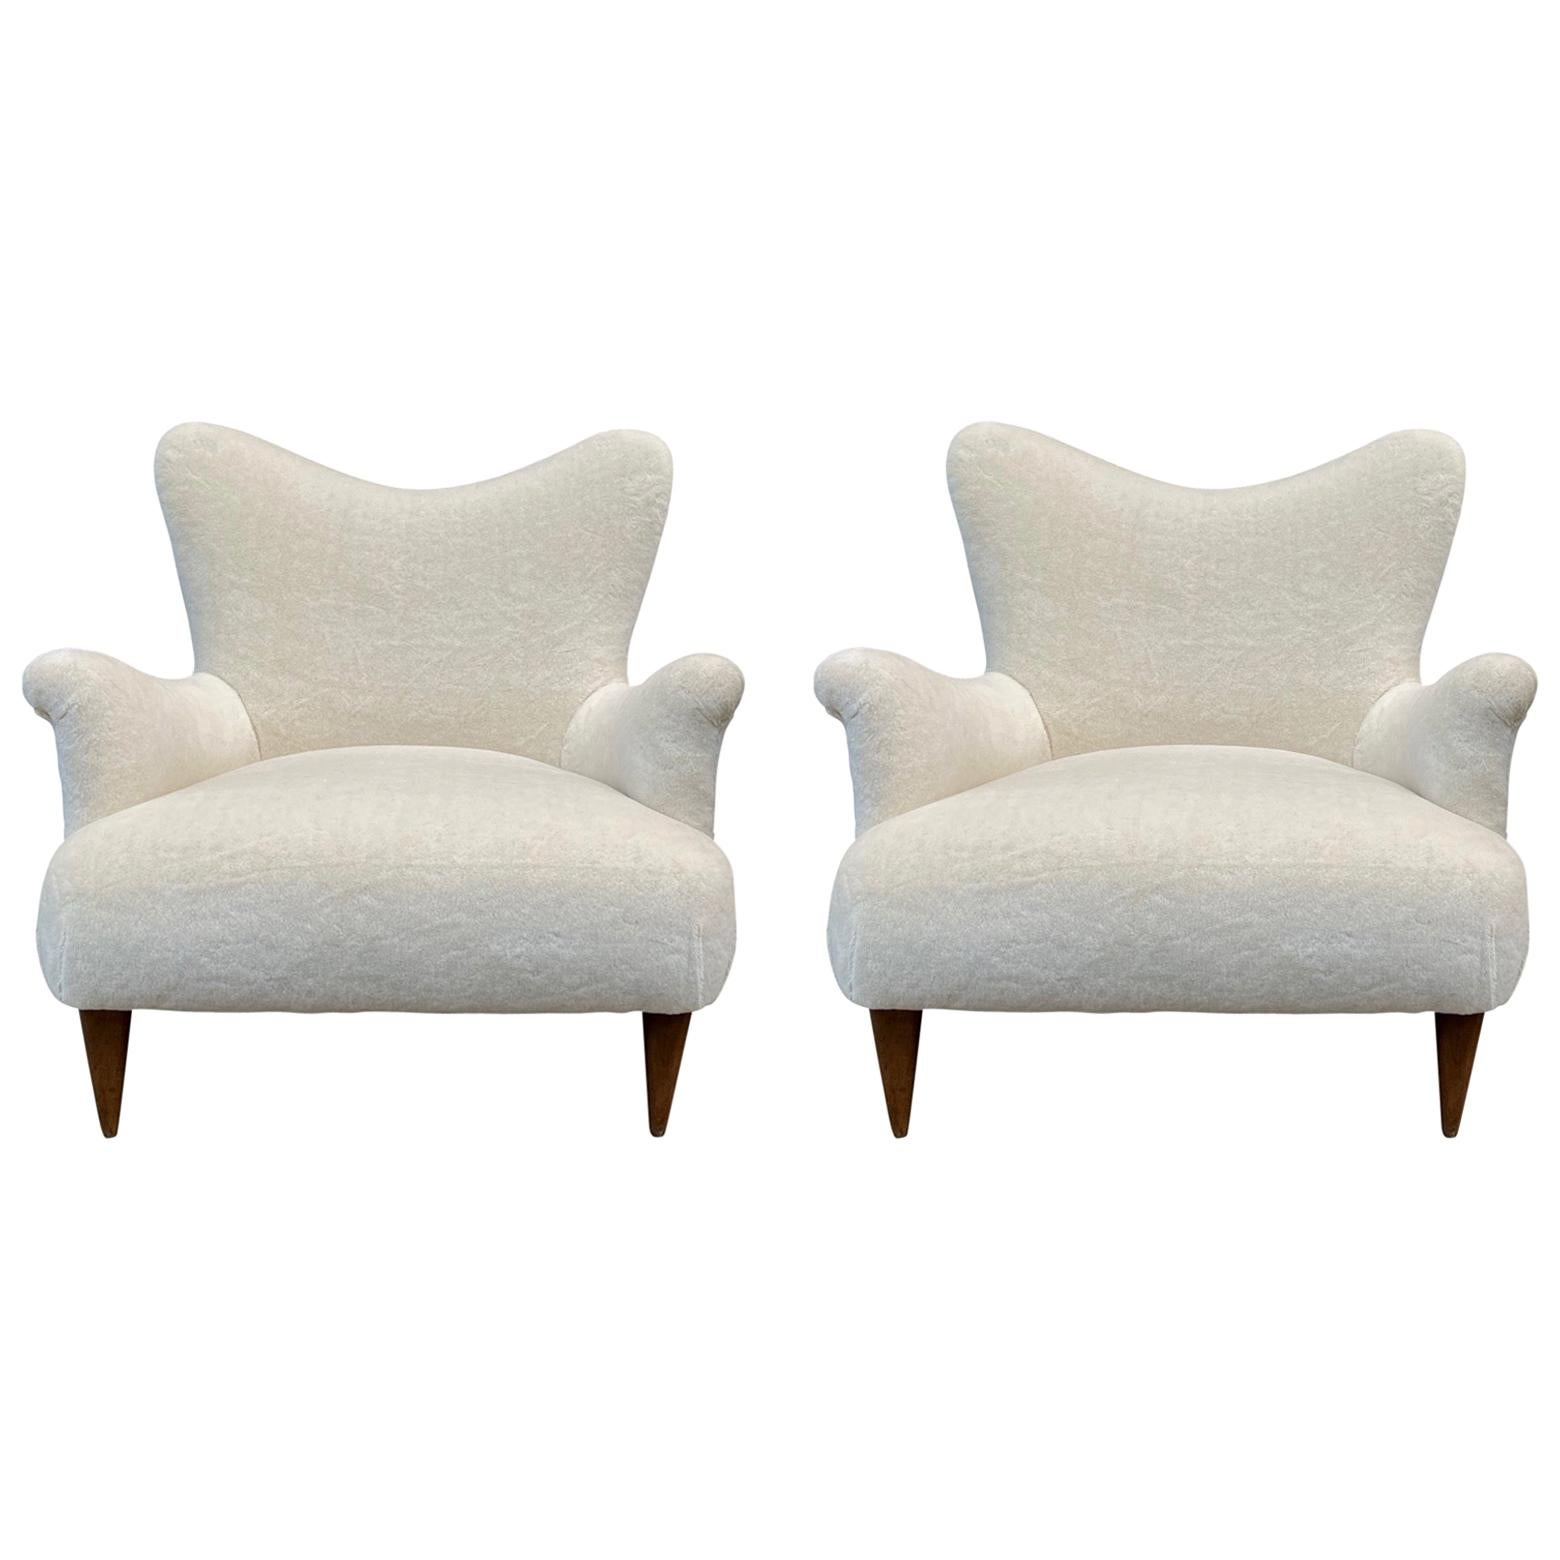 Pair of 1950s Large and Comfortable White Italian Armchairs, Lounge Chairs